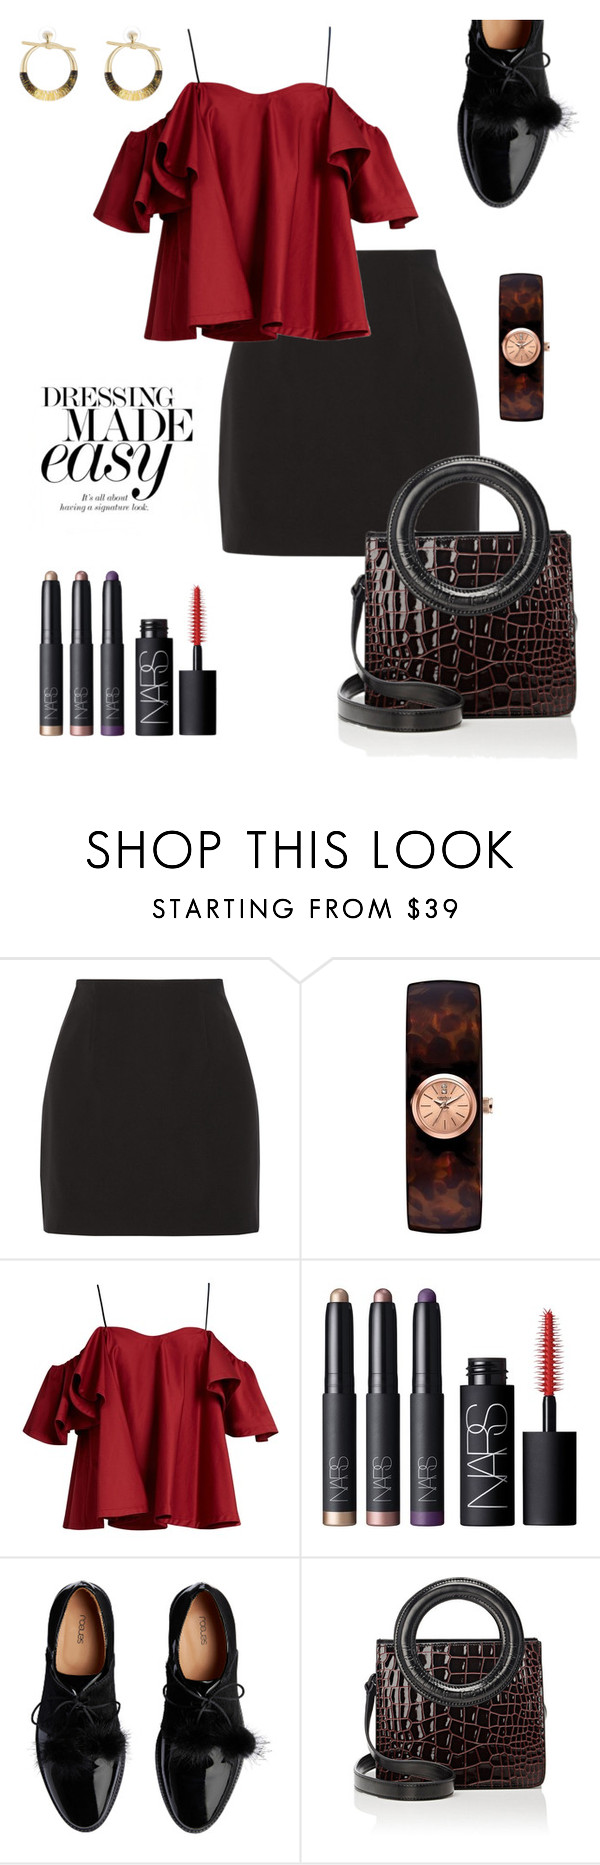 """I Feel Awesome Today!"" by schenonek ❤ liked on Polyvore featuring Elizabeth and James, Caravelle by Bulova, Anna October, NARS Cosmetics, Opening Ceremony and Alexis Bittar"